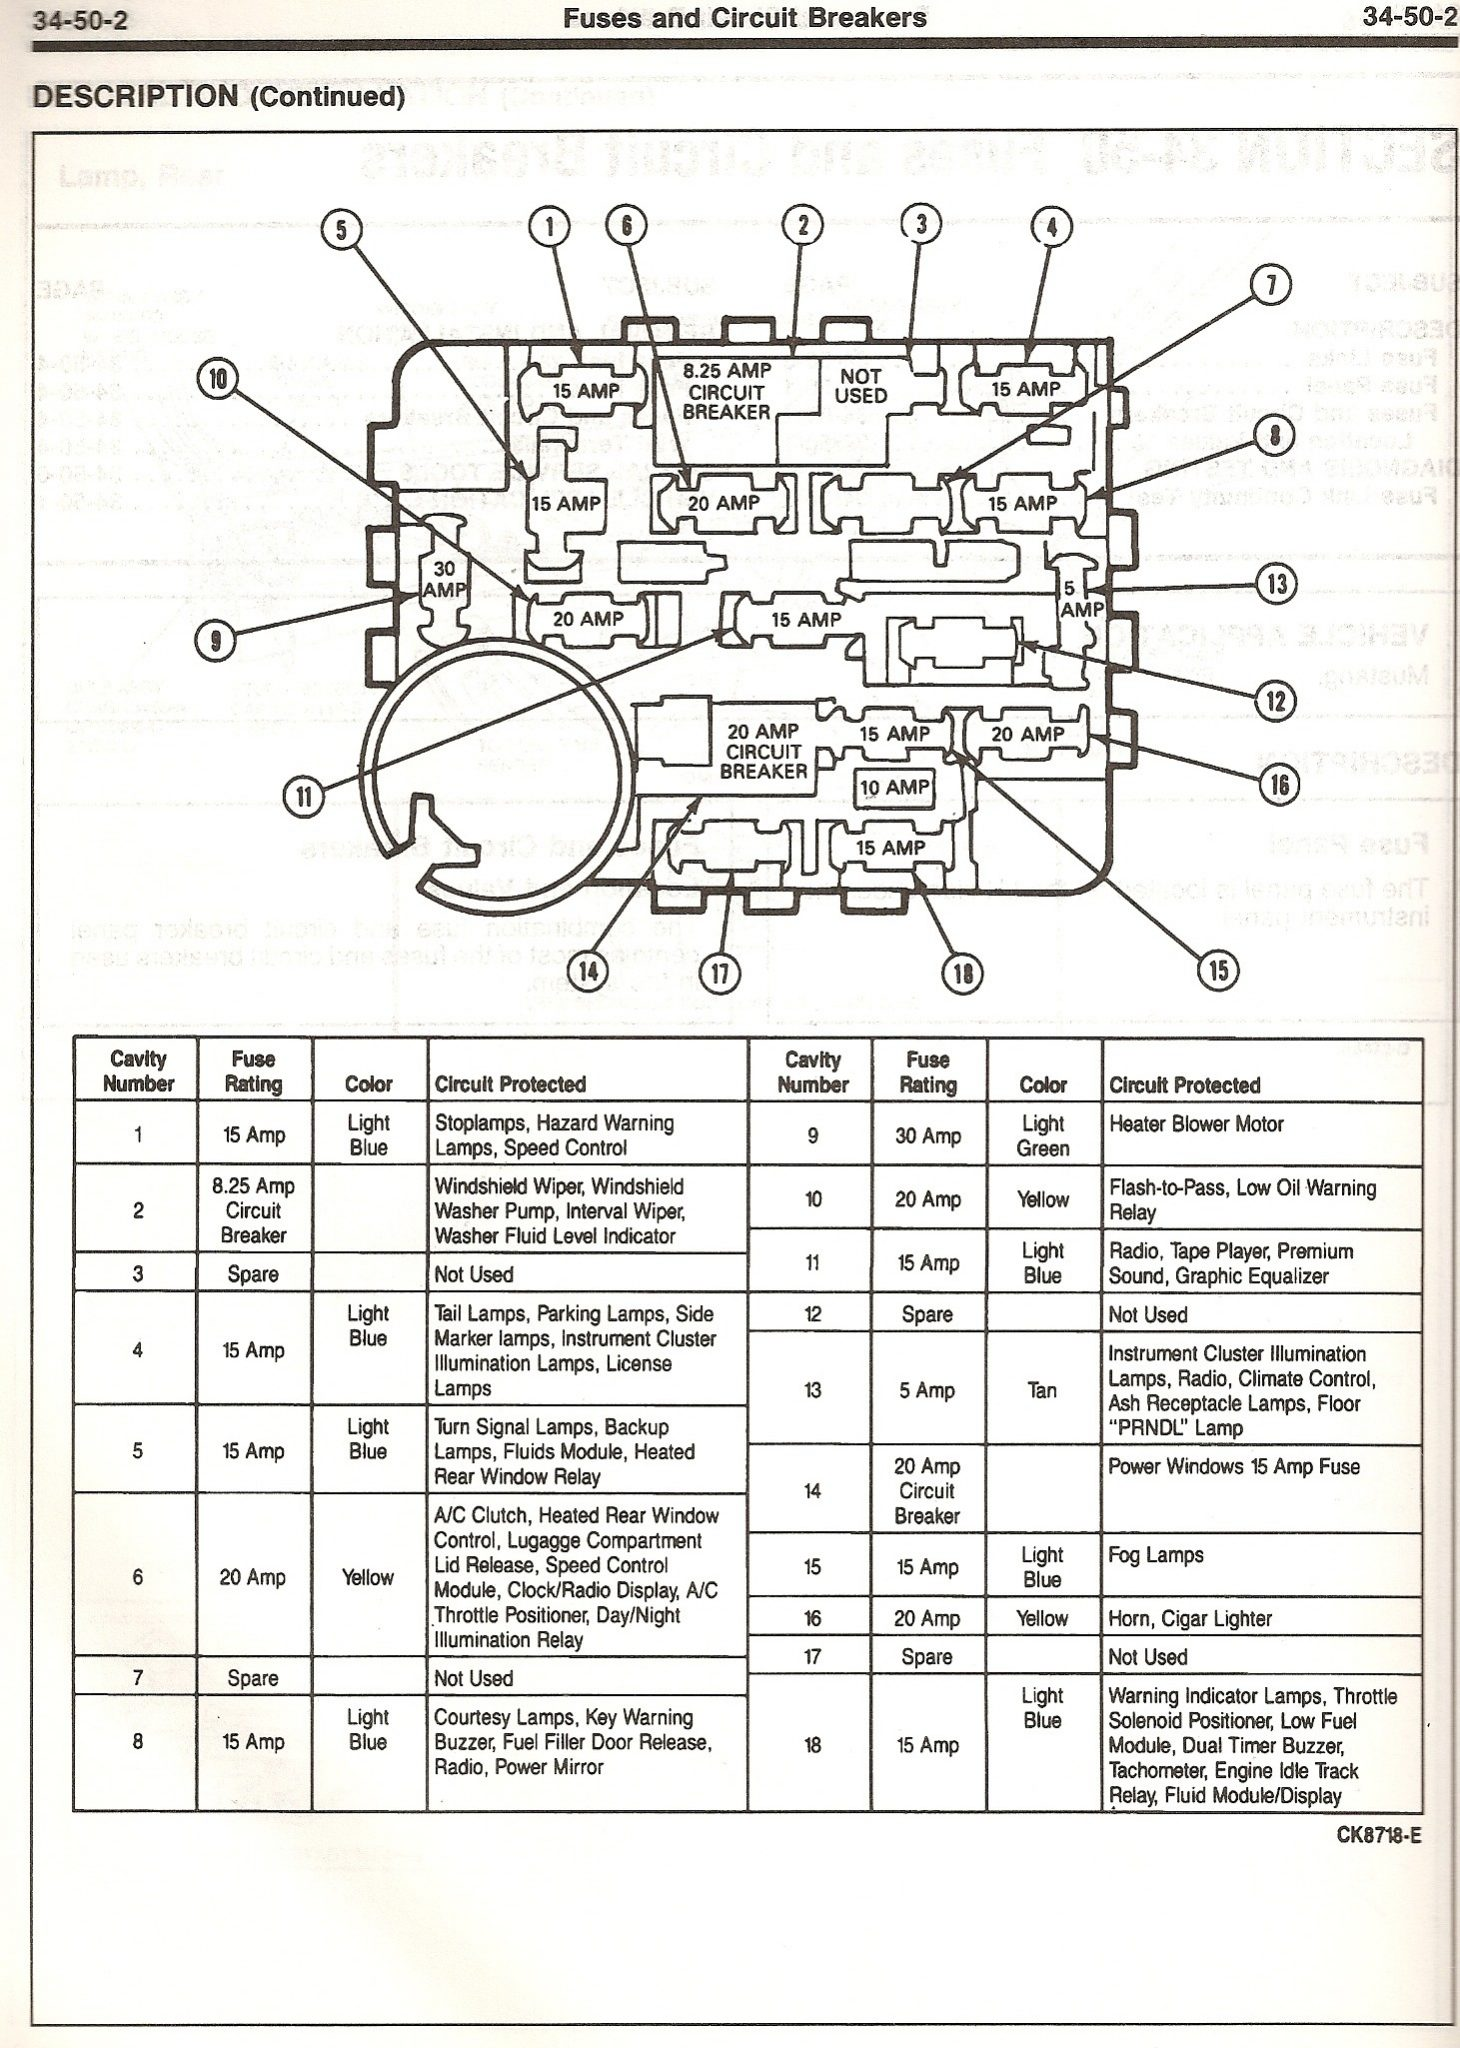 fuse box diagram for 1990 ford mustang gt 5 0 wiring diagrams mon1990 ford mustang fuse box wiring diagram schematics 1993 ford mustang gt fuse box diagram data